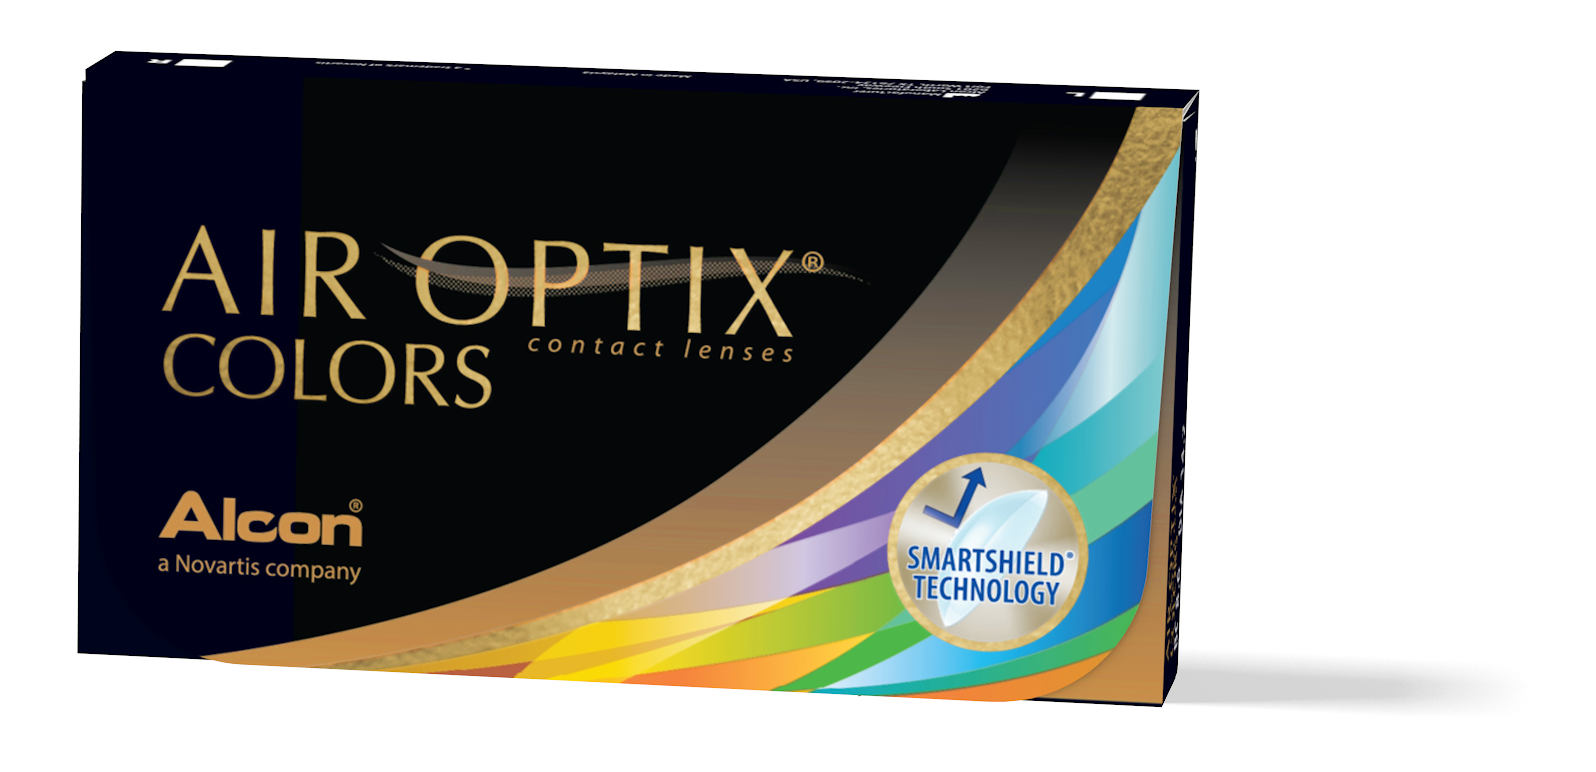 AIR OPTIX® COLORS Contact Lenses